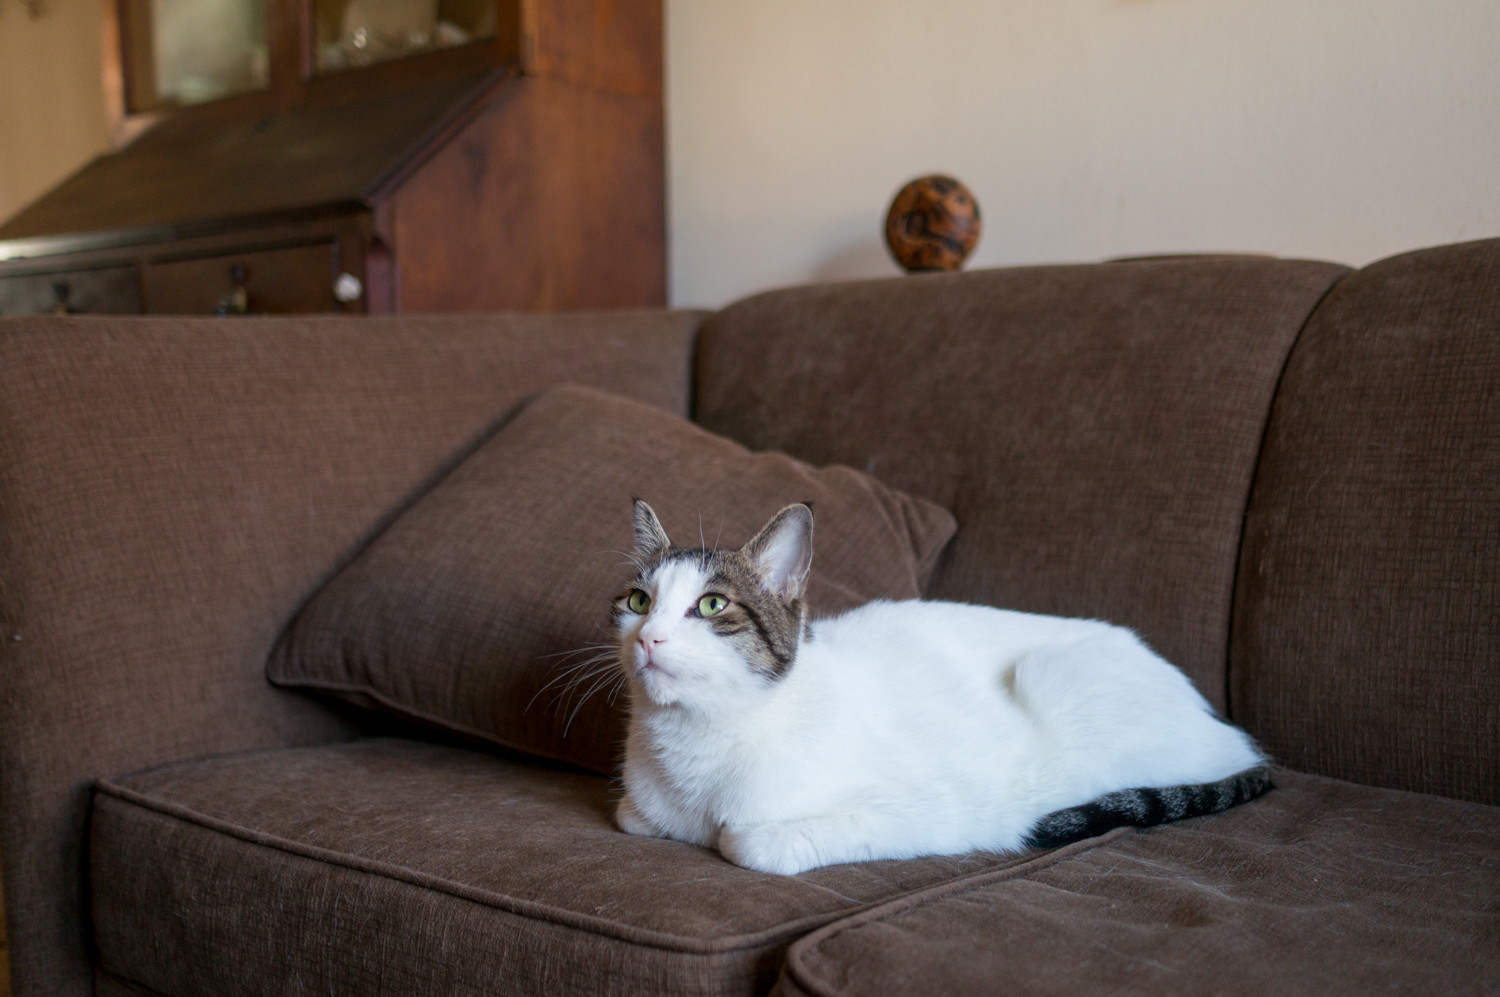 Ivan Braun's 5-year-old cat Lulu rests on a couch. Lulu was abandoned as a kitten outside of Braun's home, which became Lulu's home.